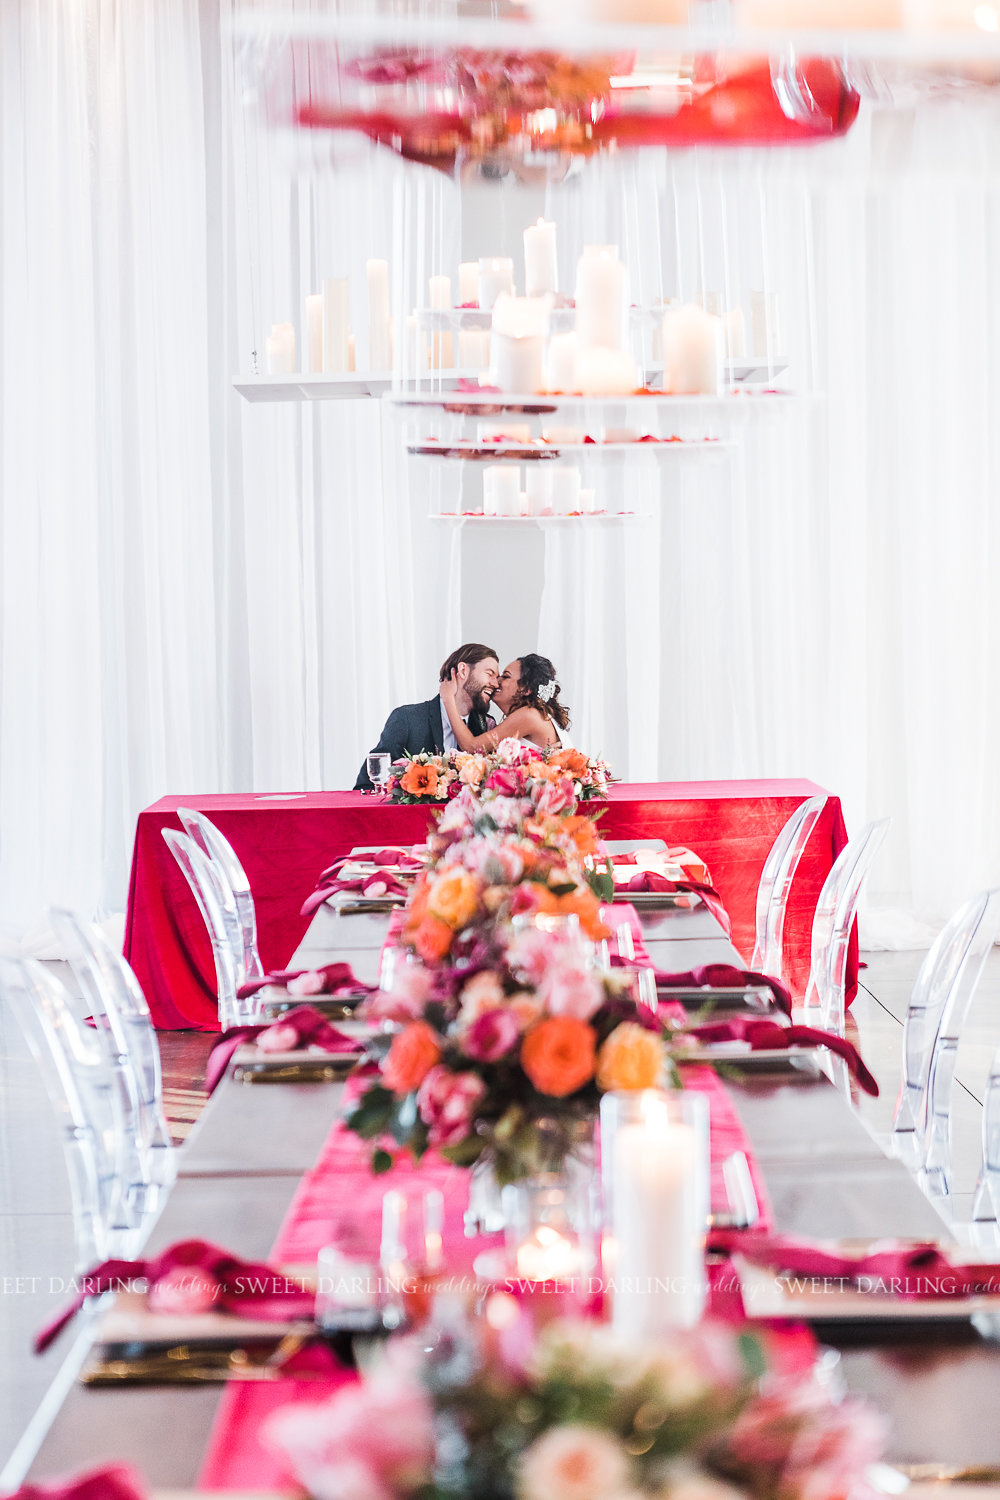 Now that's a feasting table! We suspended acrylic shelves at varying heights above the line of harvest tables, covered them with rose petals and then added candle groupings. Not only did it add a gorgeous glow to the room, but while seated at the tables there was rose petal garden overhead.